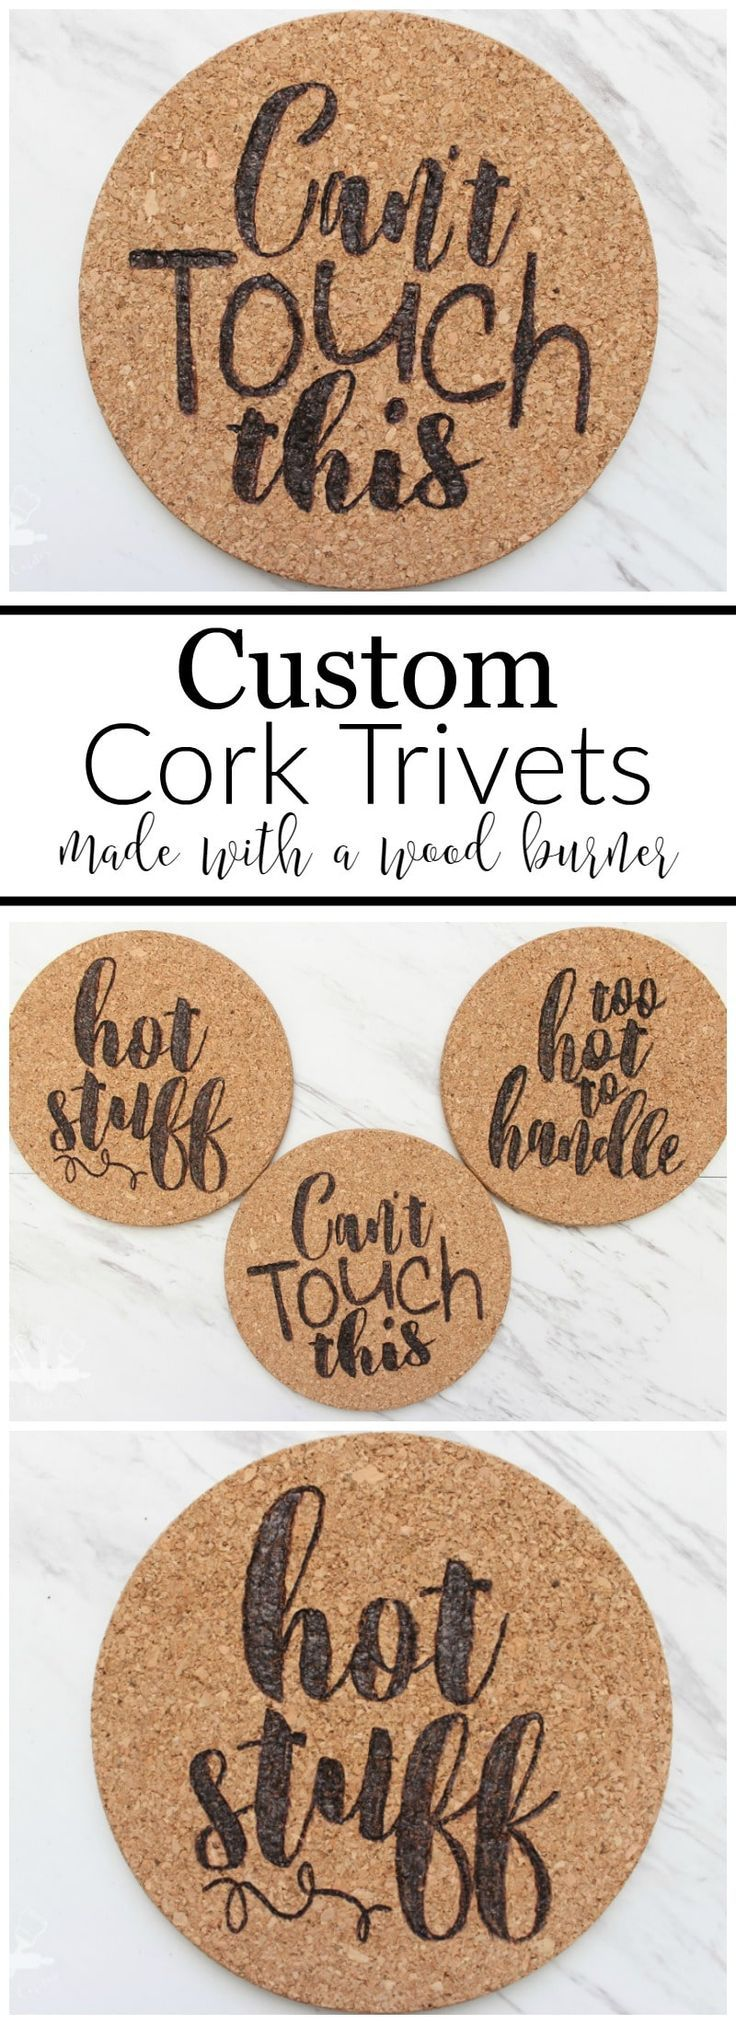 Info's : Custom Cork Trivets are so easy to make with a stencil and a woodburning tool. Plus they make a great gift!